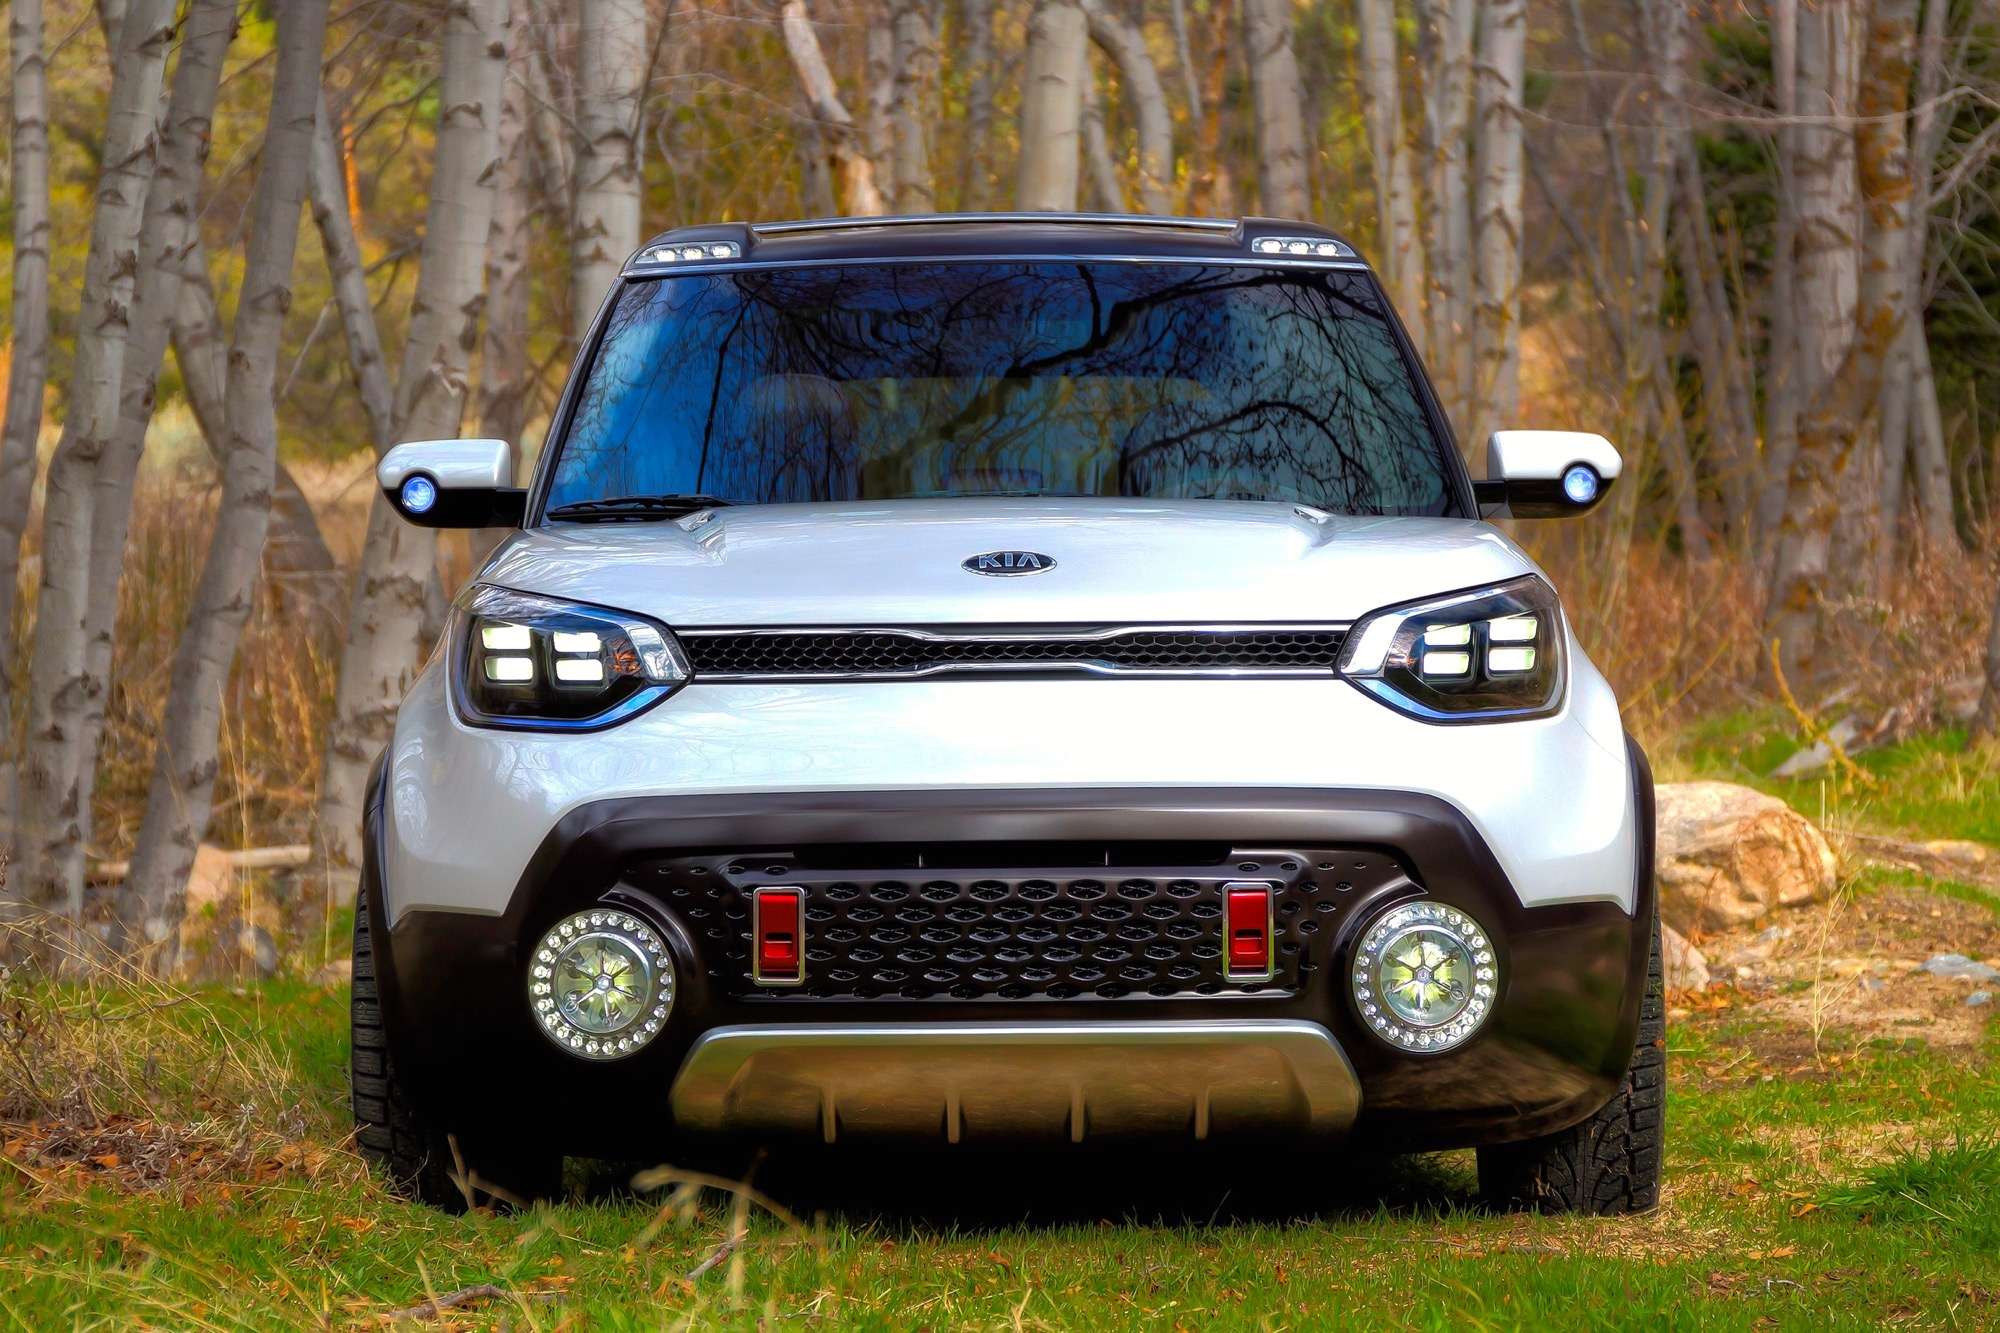 much rack features roof hatchback kia and is safety accessories review soul to insure it how equipment